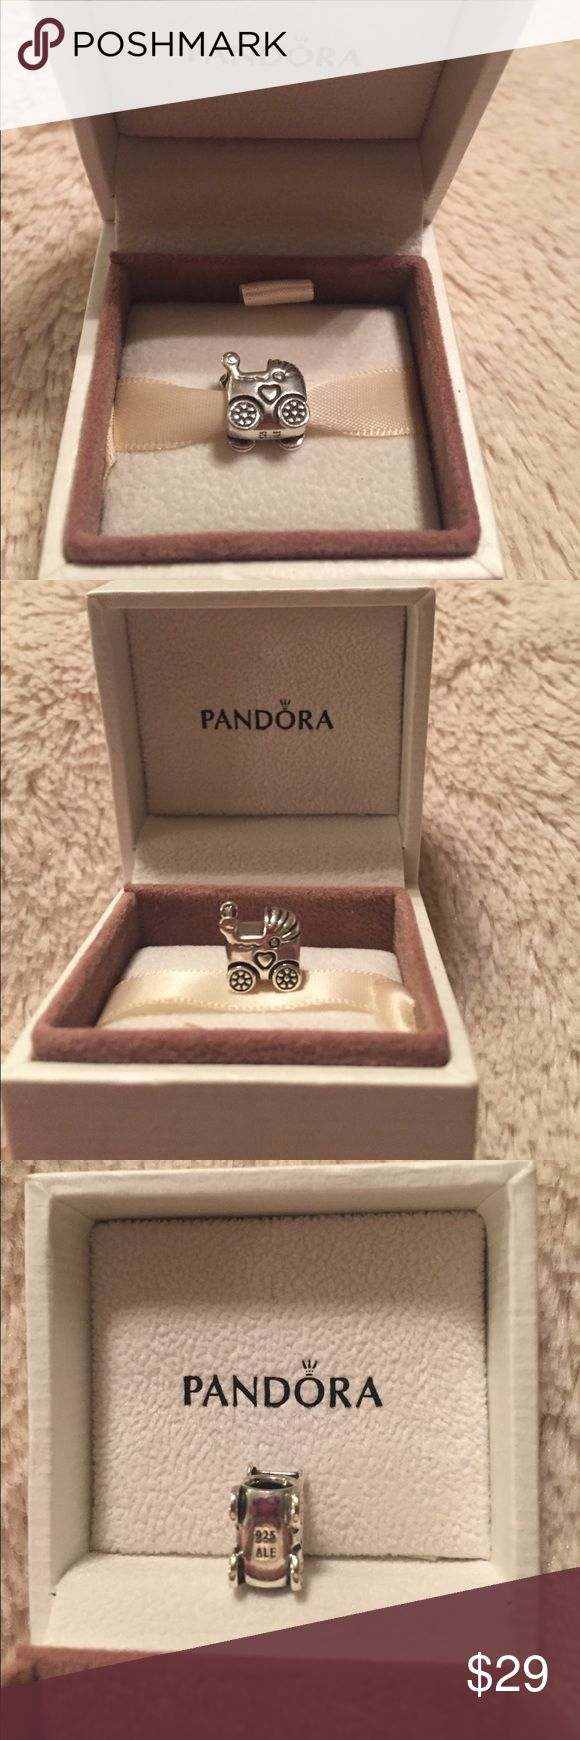 Pandora Baby Carriage Charm Pandora sterling silver baby carriage charm (790346) in excellent condition.  Purchased new from the Pandora store and was rarely worn.  Will come in original Pandora box. Pandora Jewelry